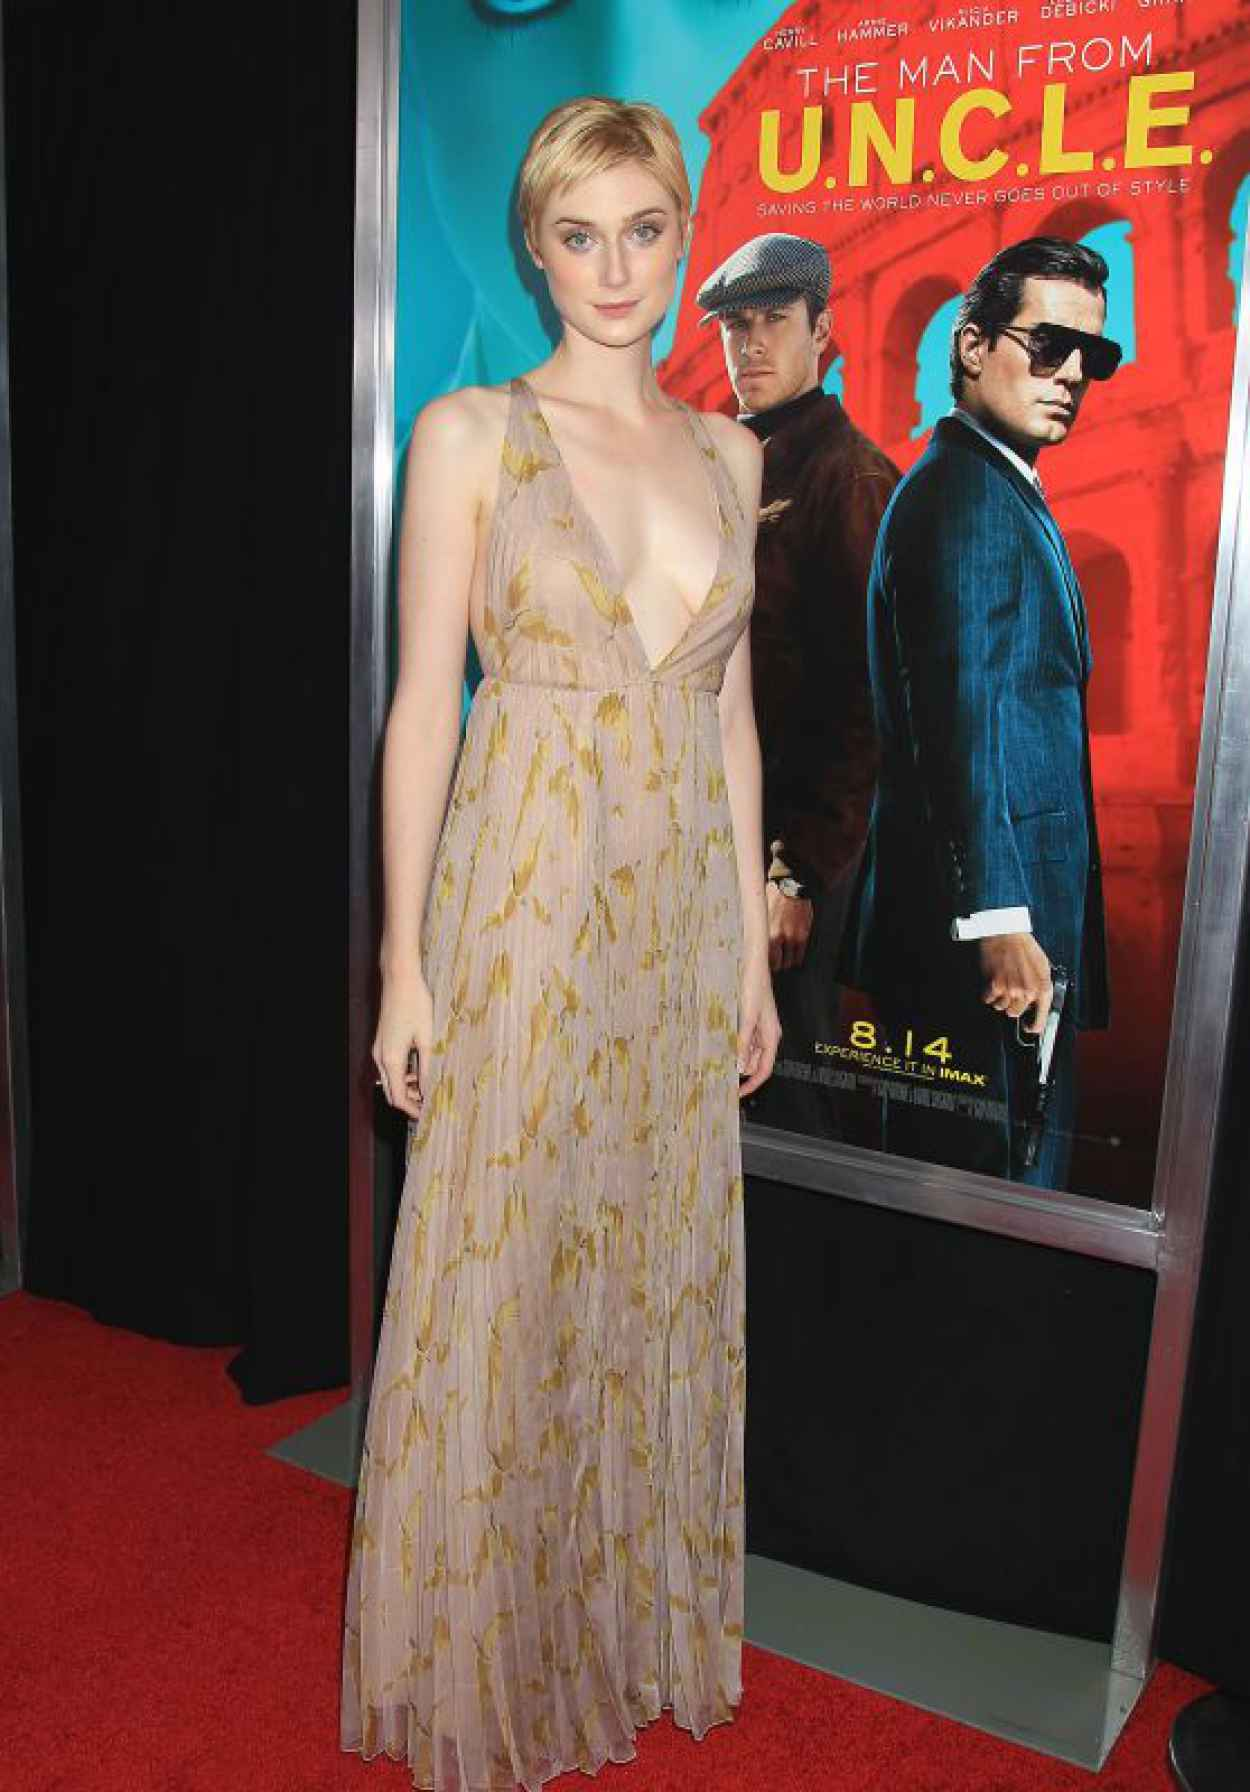 Elizabeth Debicki - The Man From U.N.C.L.E. Premiere in New York City-1